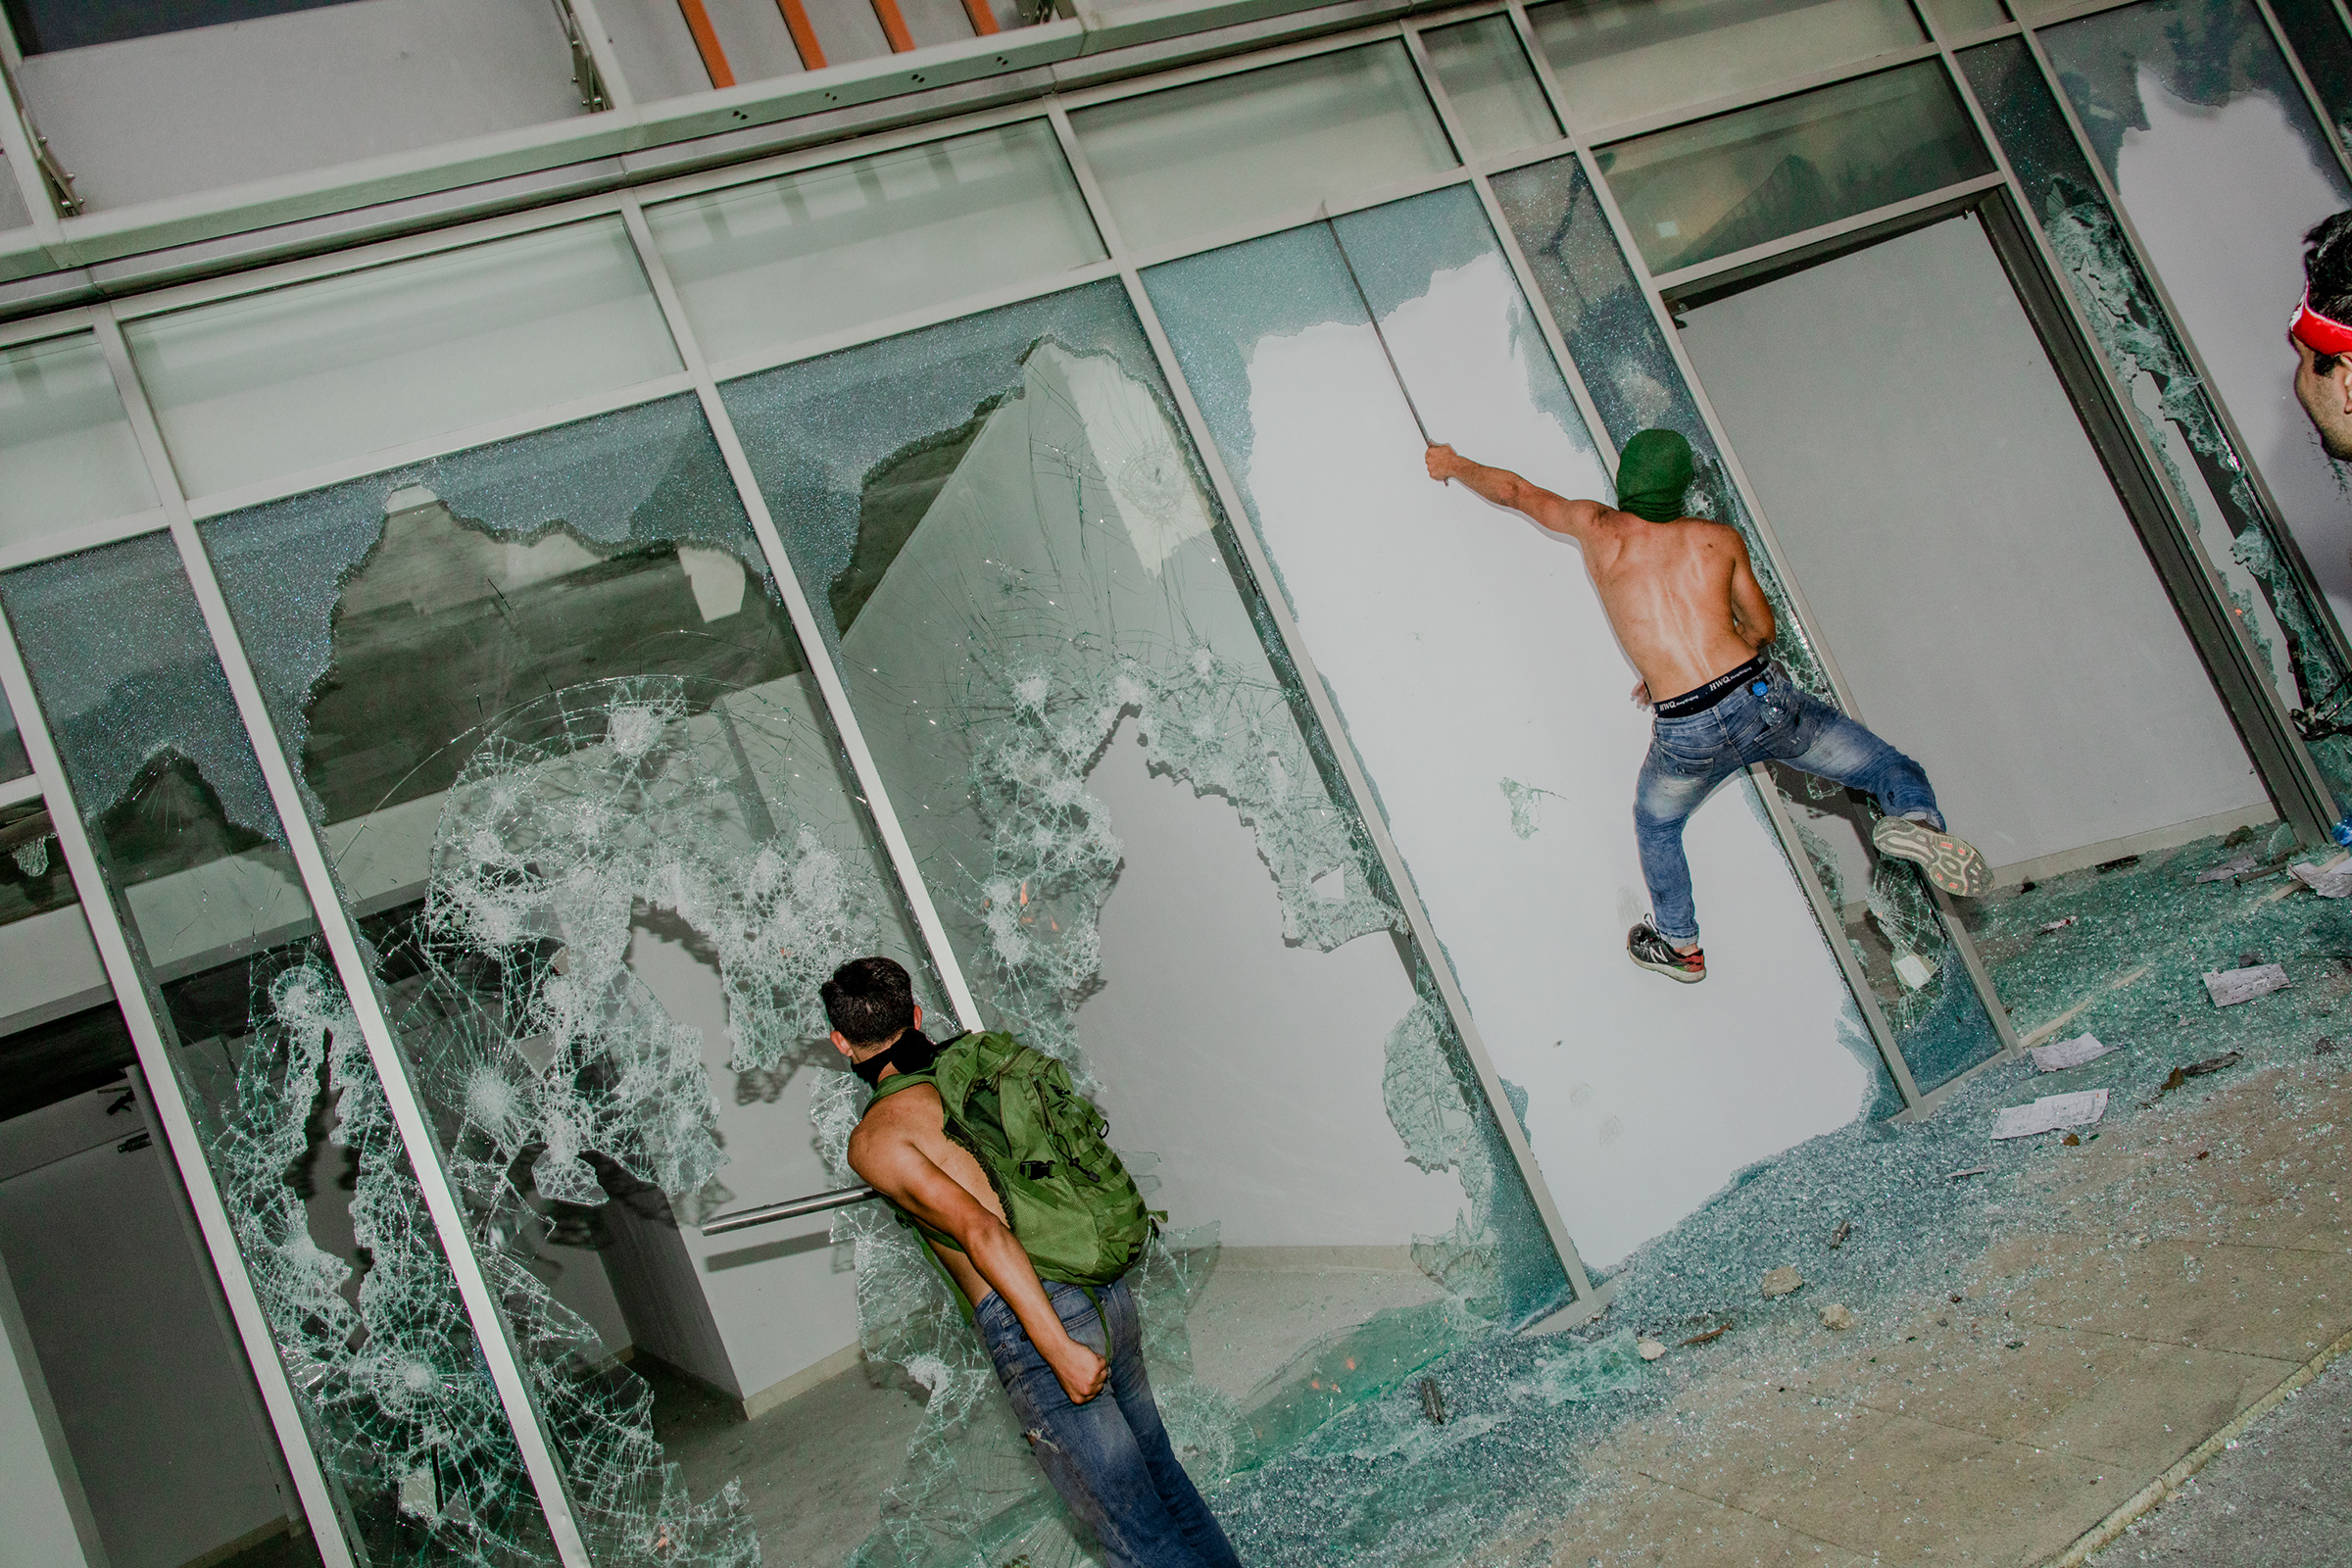 Young men smashing shop windows on the first day of protests in Beirut on Oct. 18, 2019.